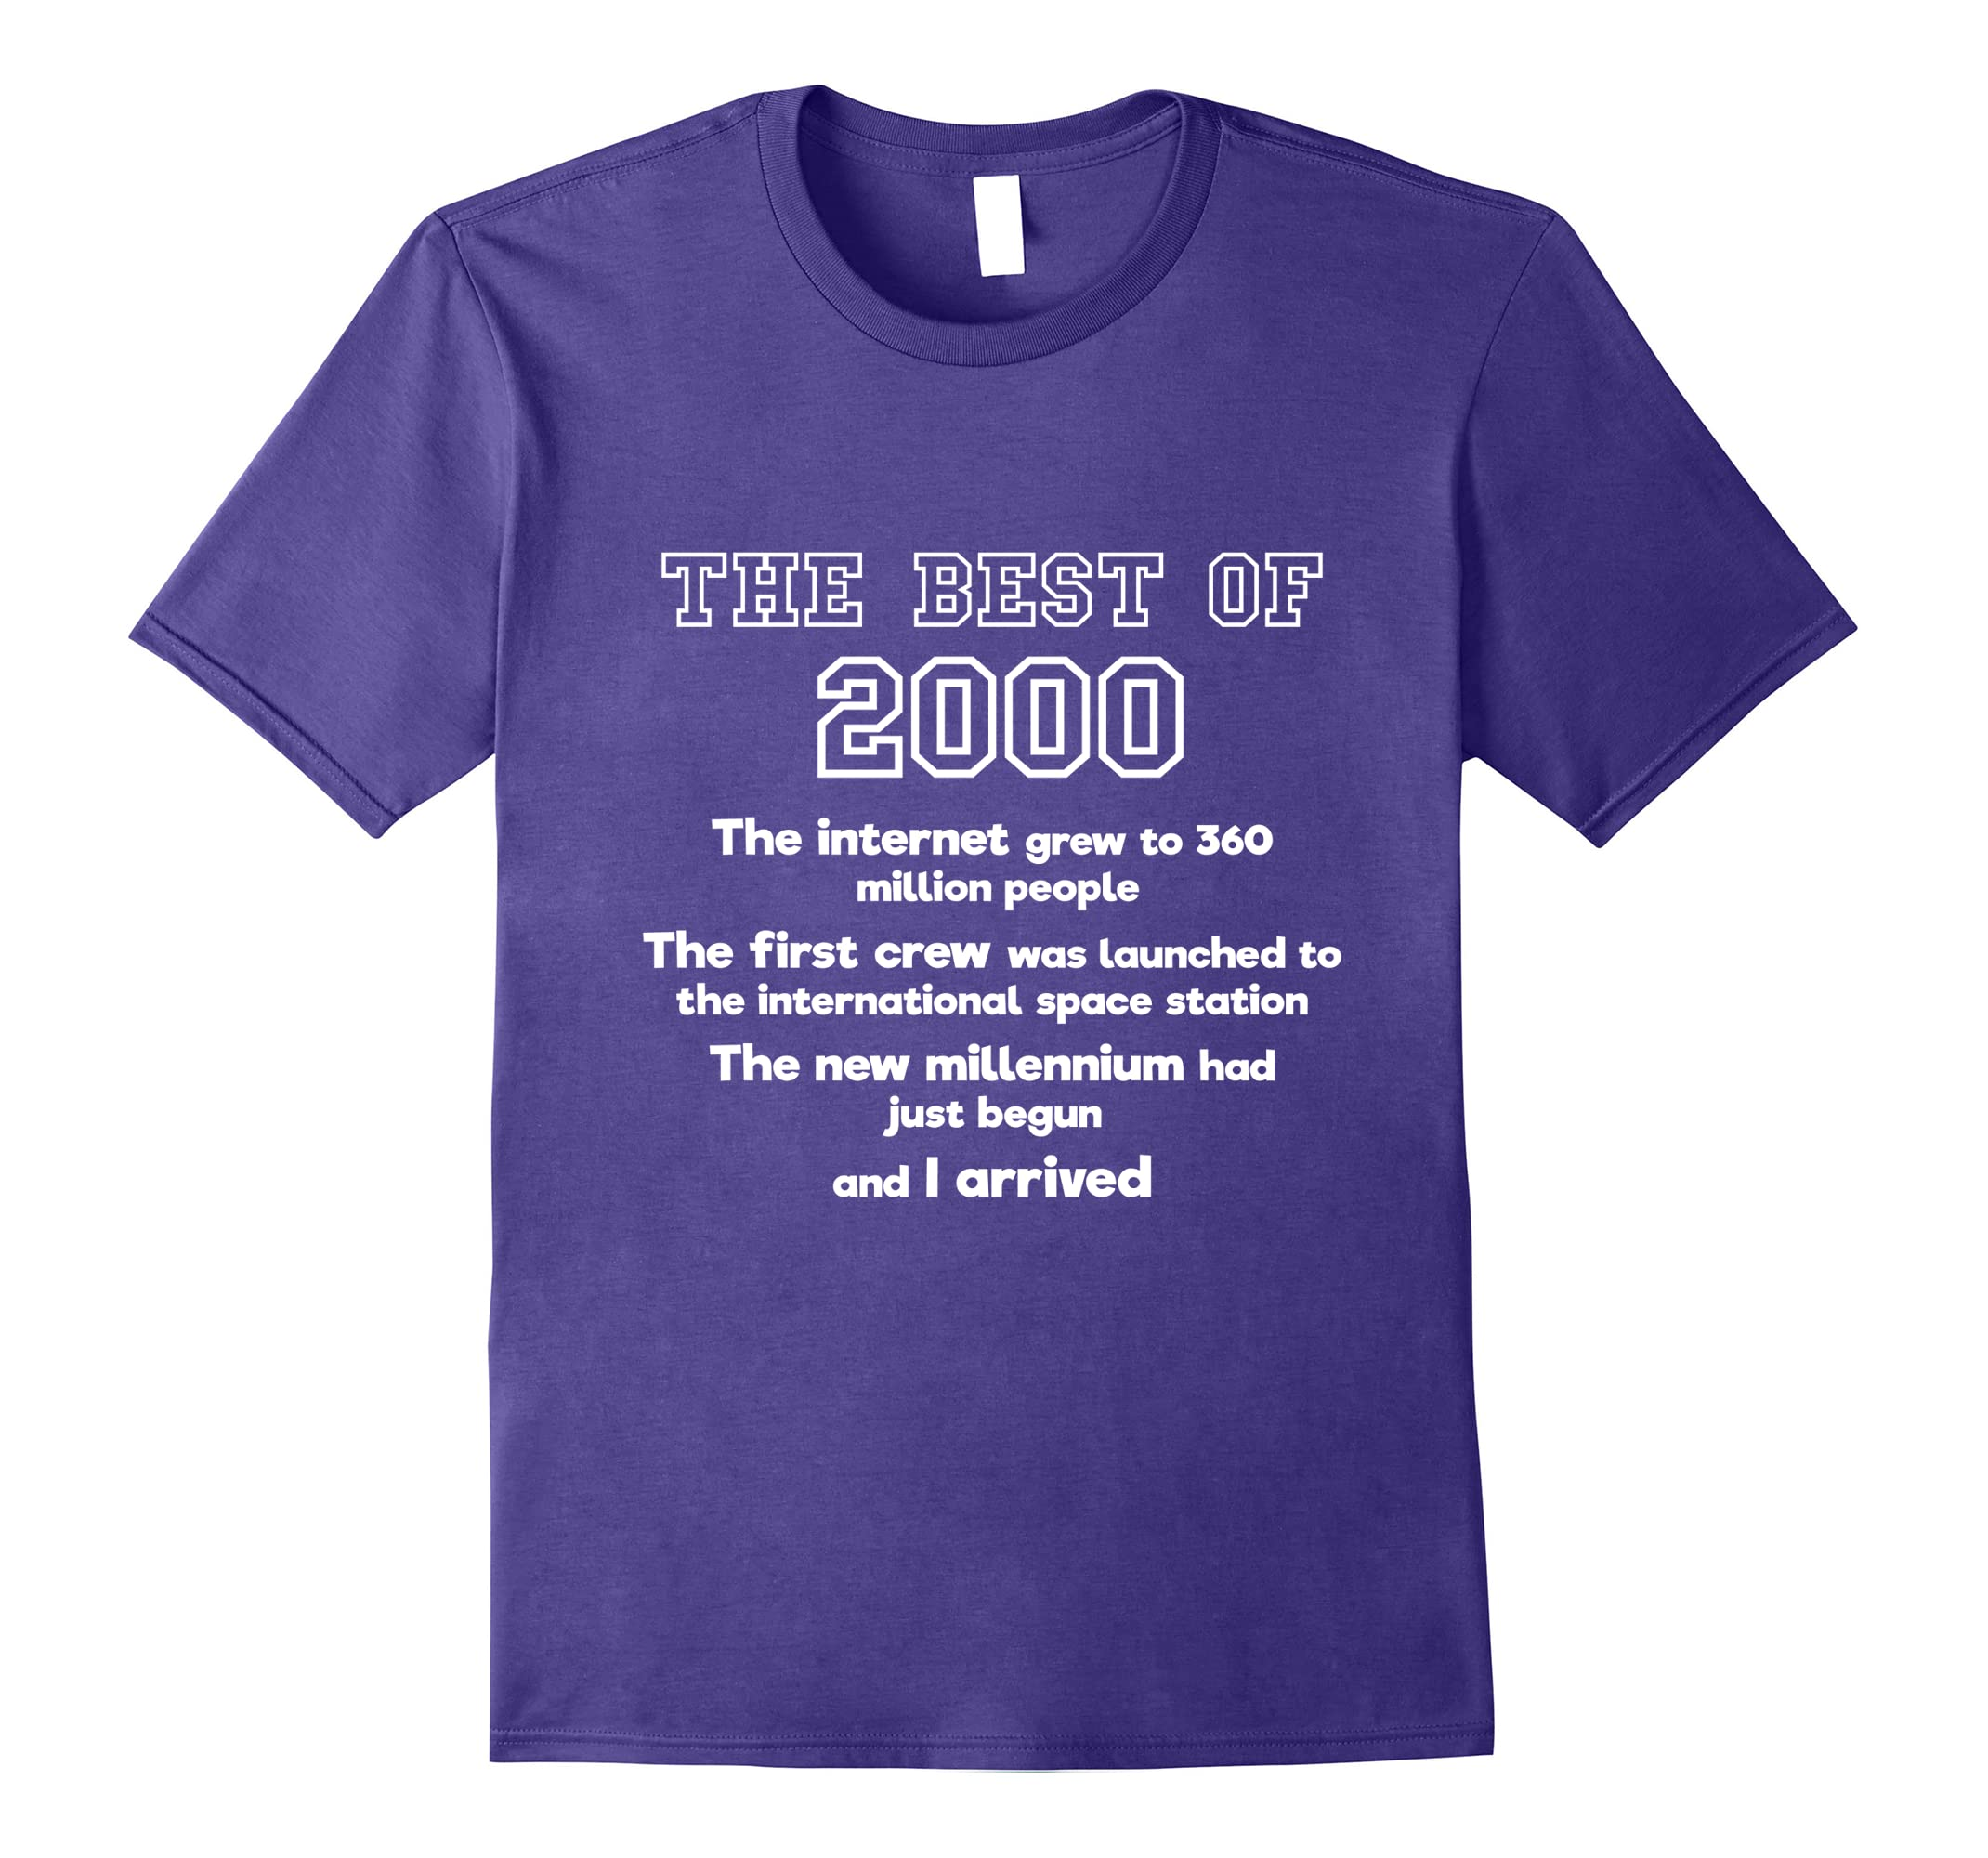 2000 18th birthday T shirt gift for 18 year old boys & girls-RT